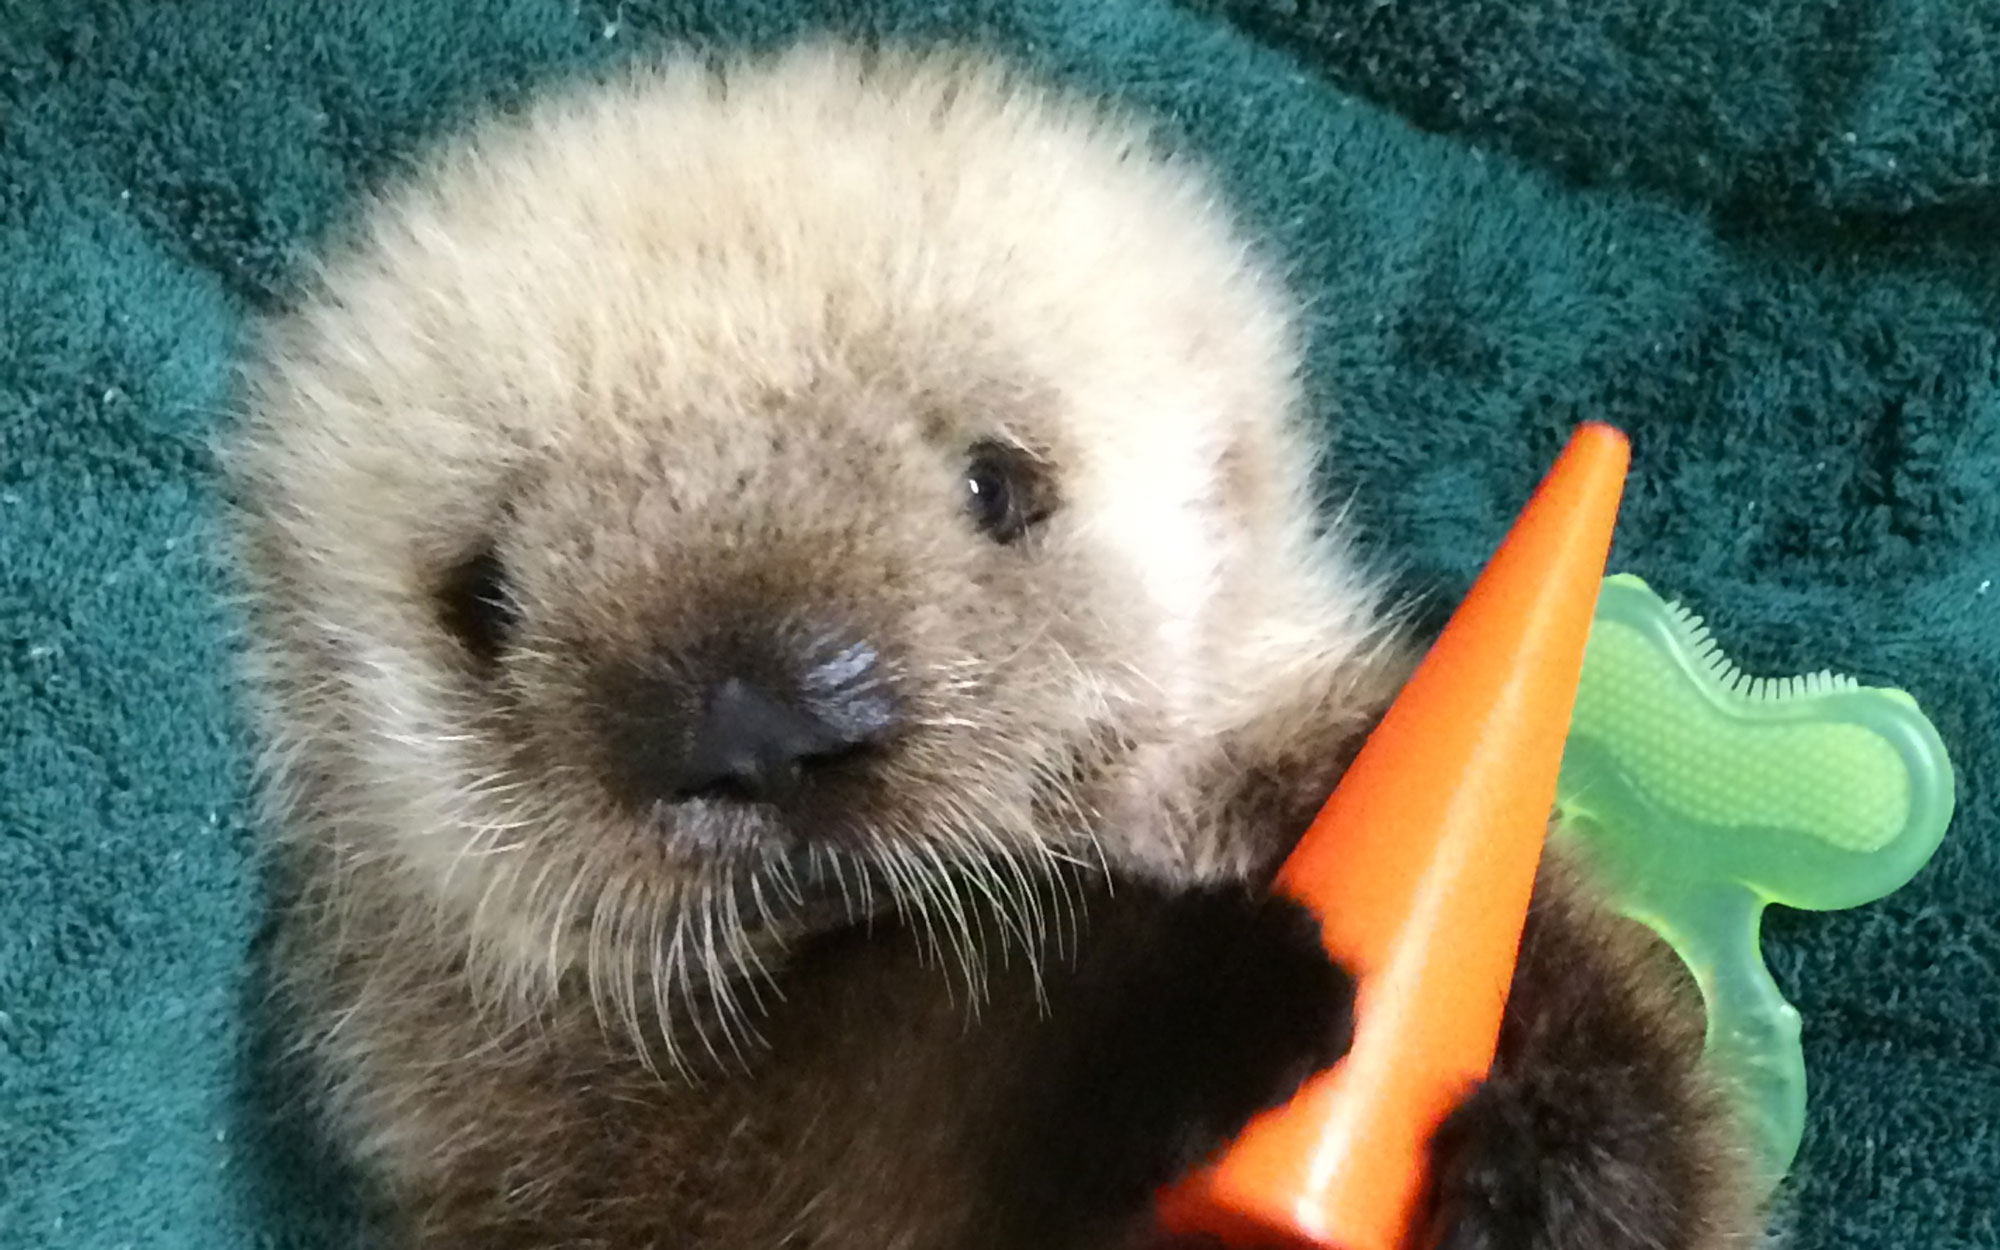 This Week in Cute Zoo Animal Births: a Sea Otter Transfer, Giant Panda Twins, and More